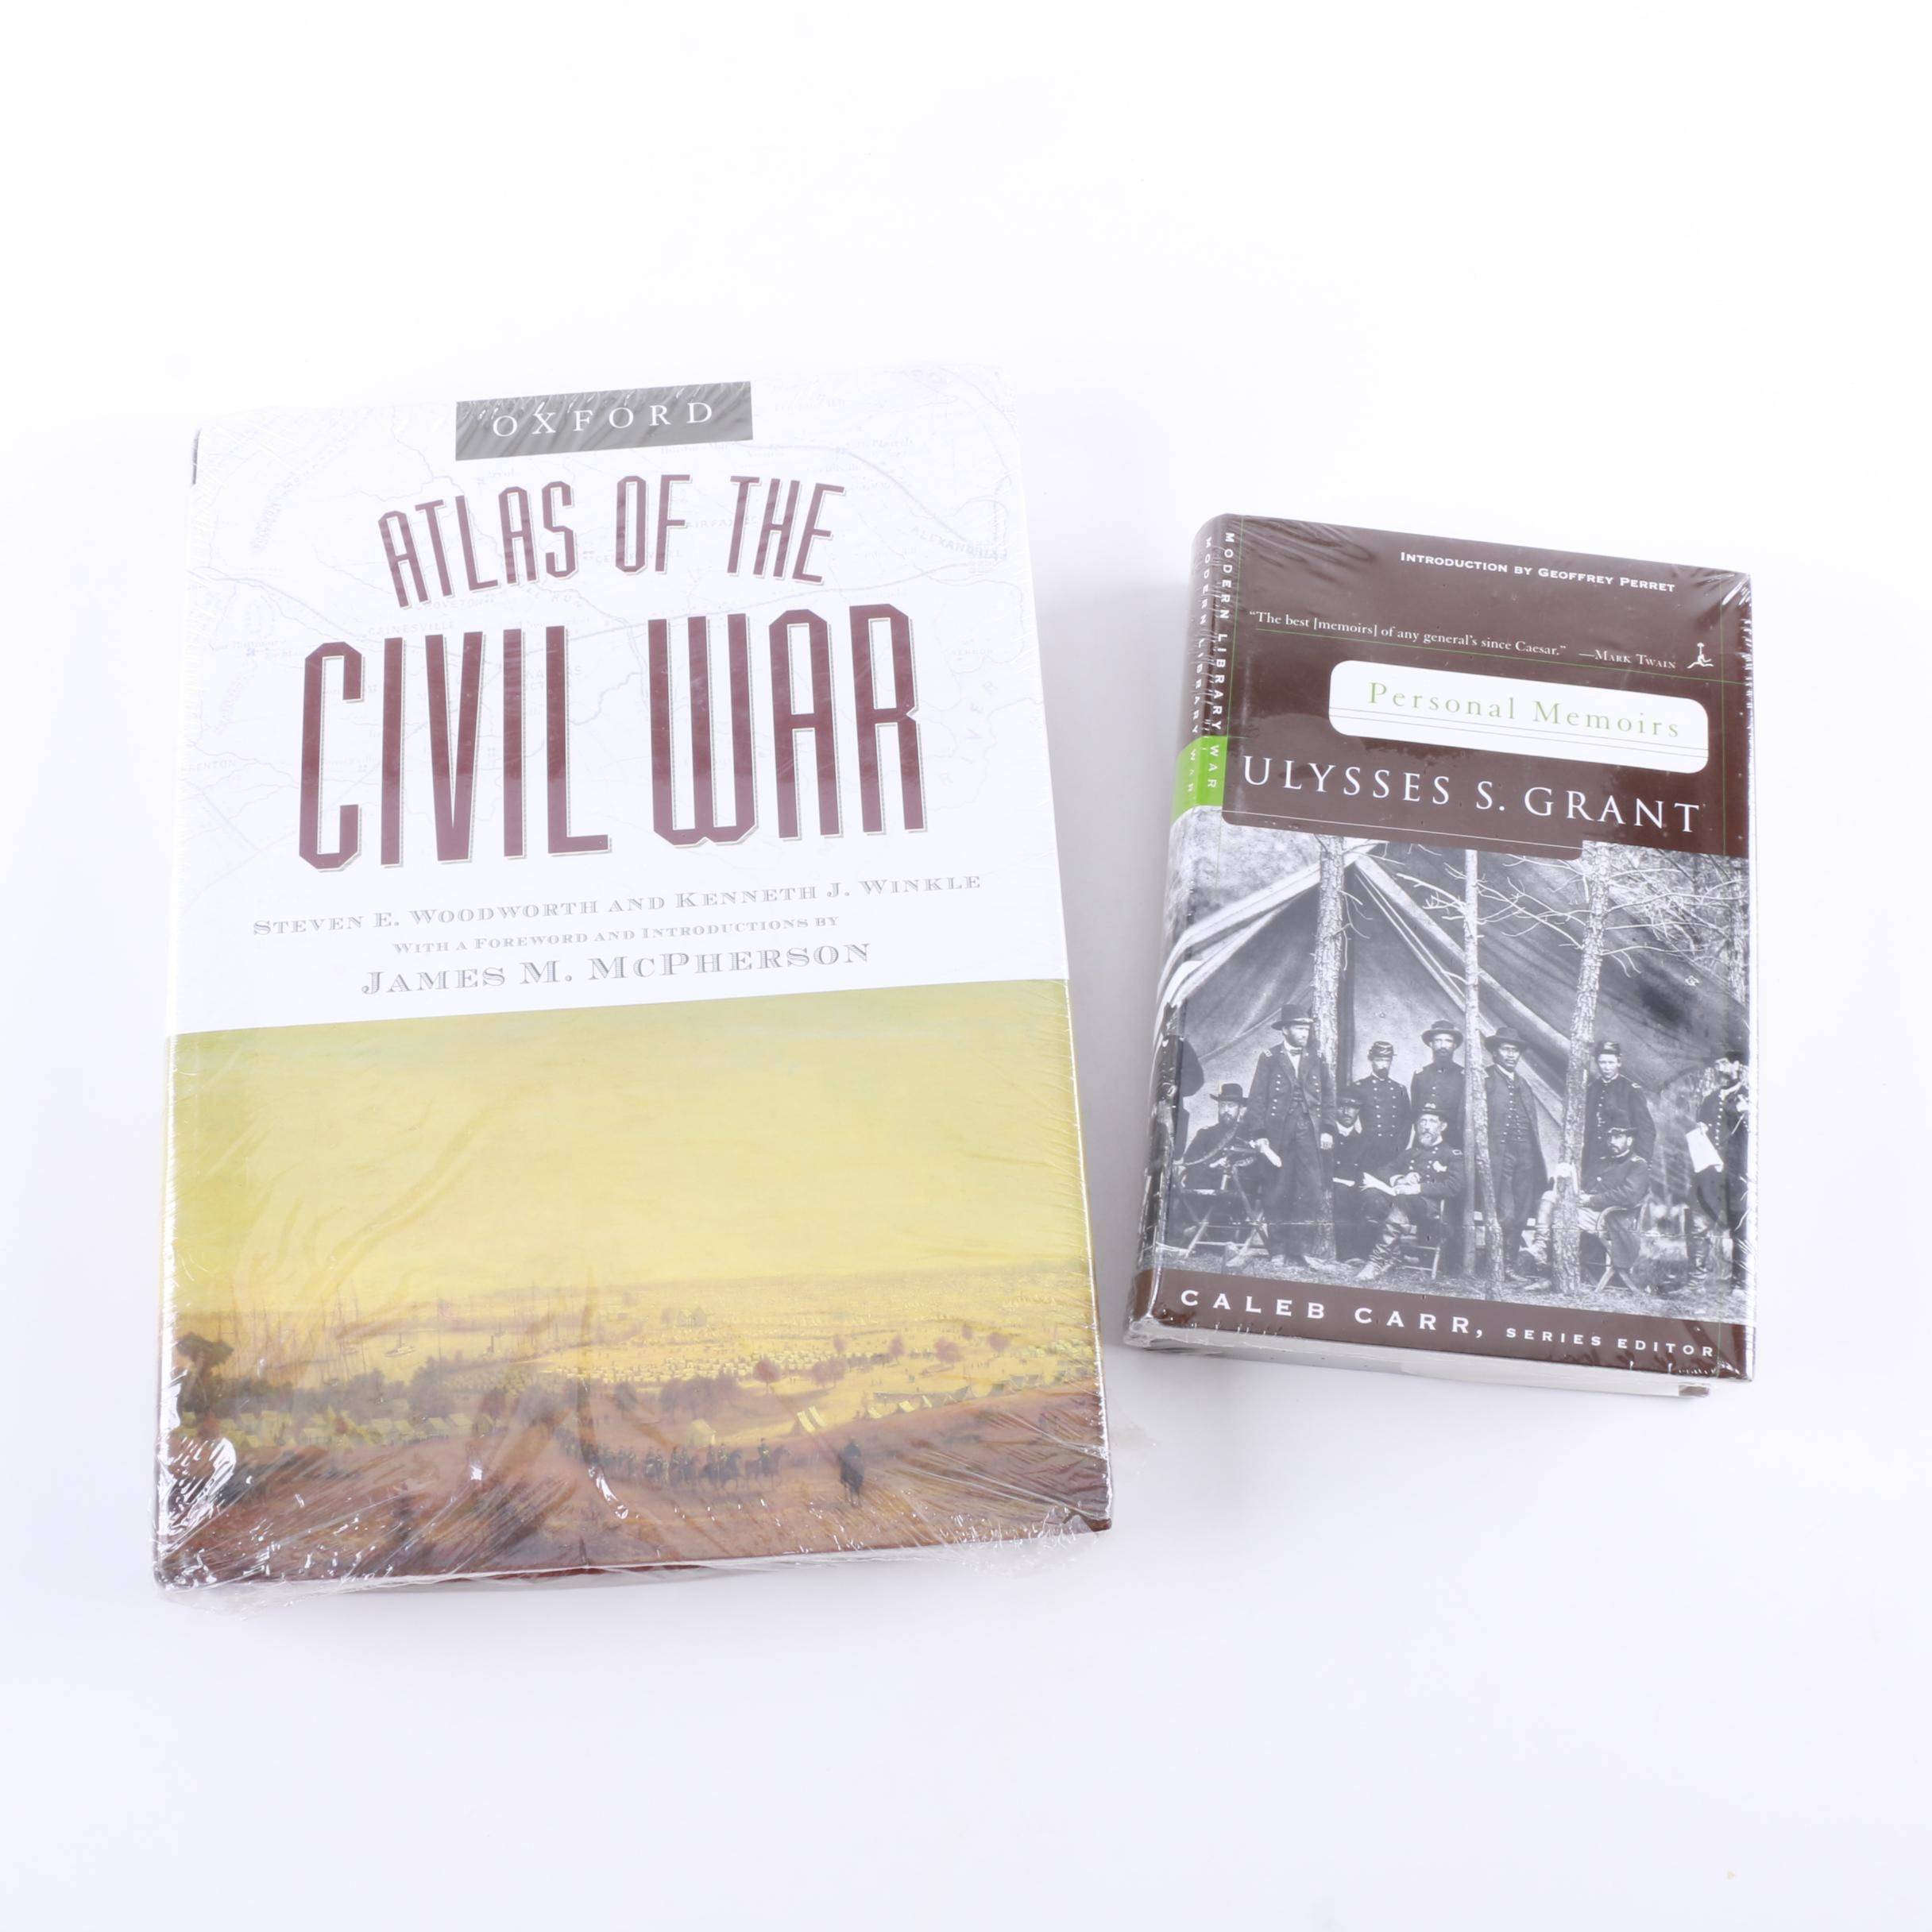 """Oxford Atlas of the Civil War"" and ""Personal Memoirs of Ulysses S. Grant"""